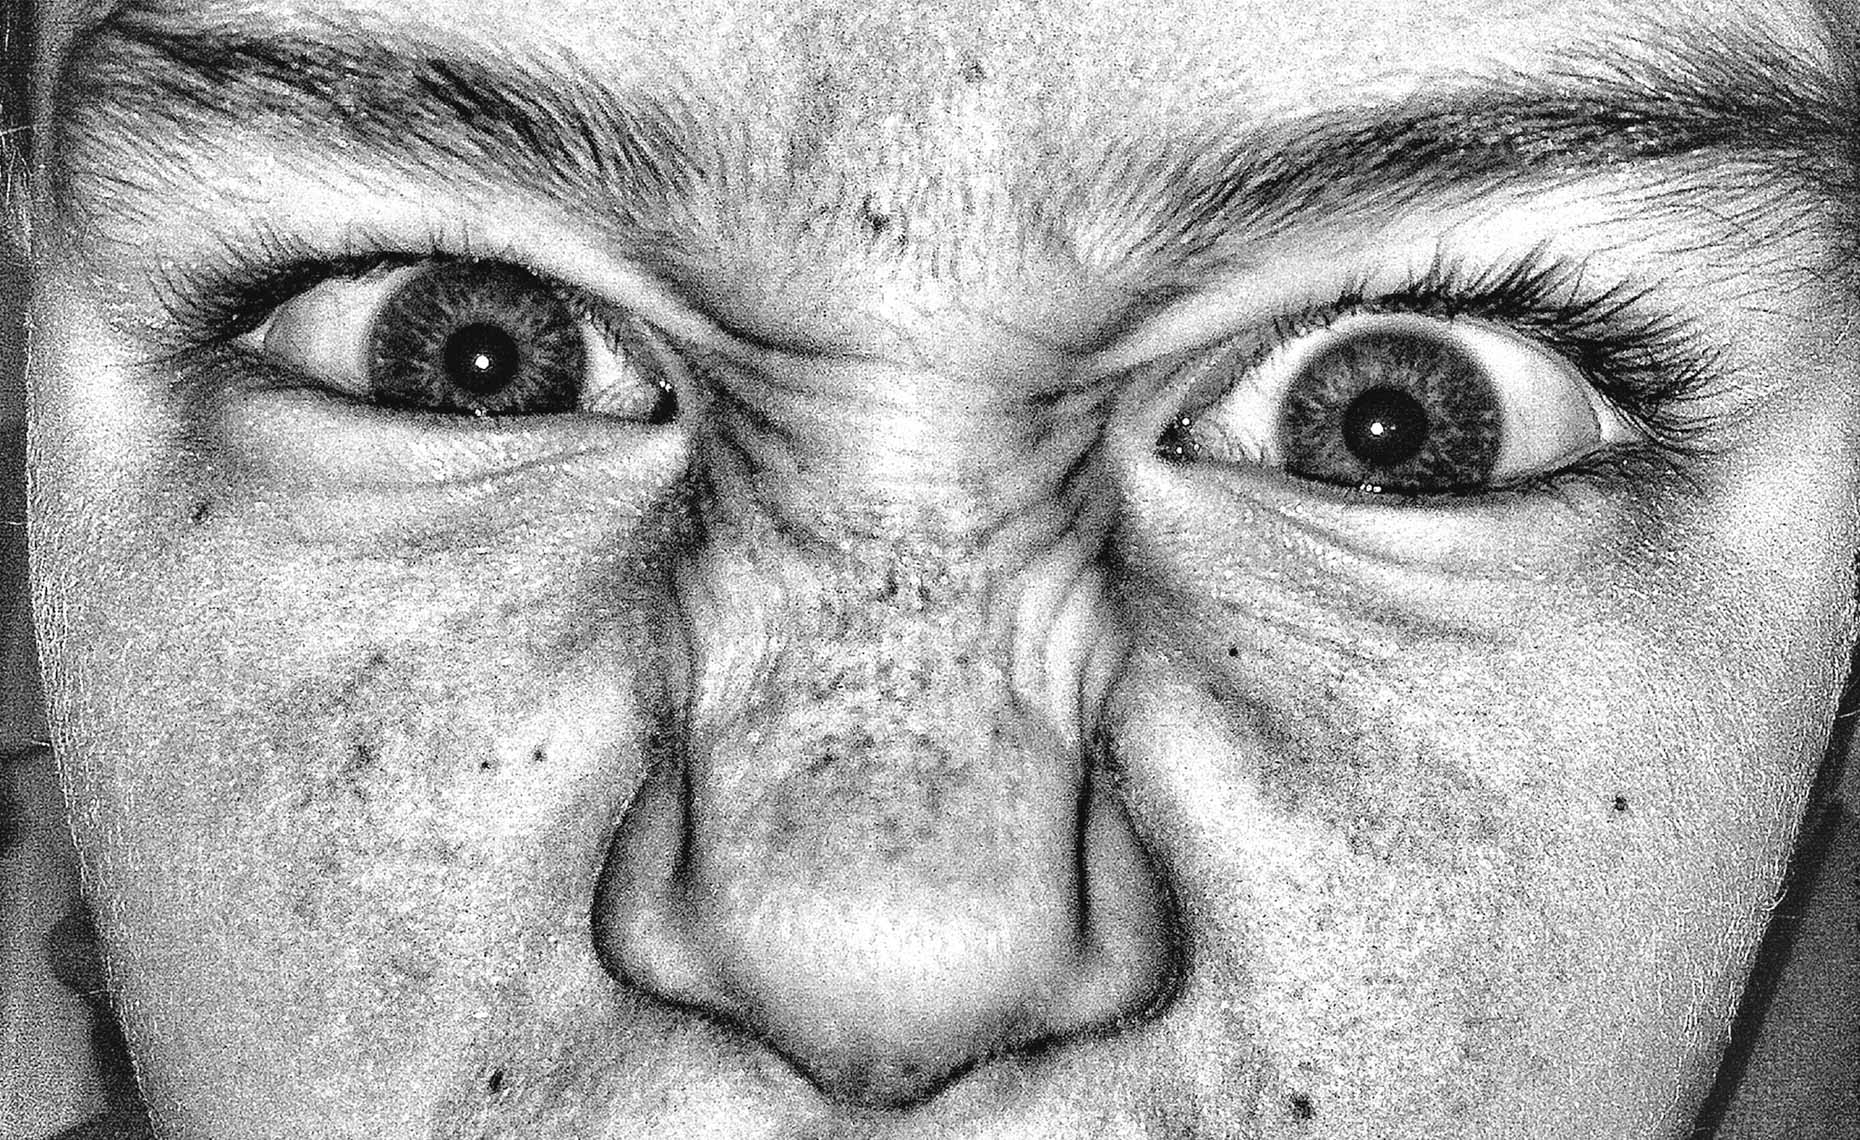 Extreme black and white close up of a boy